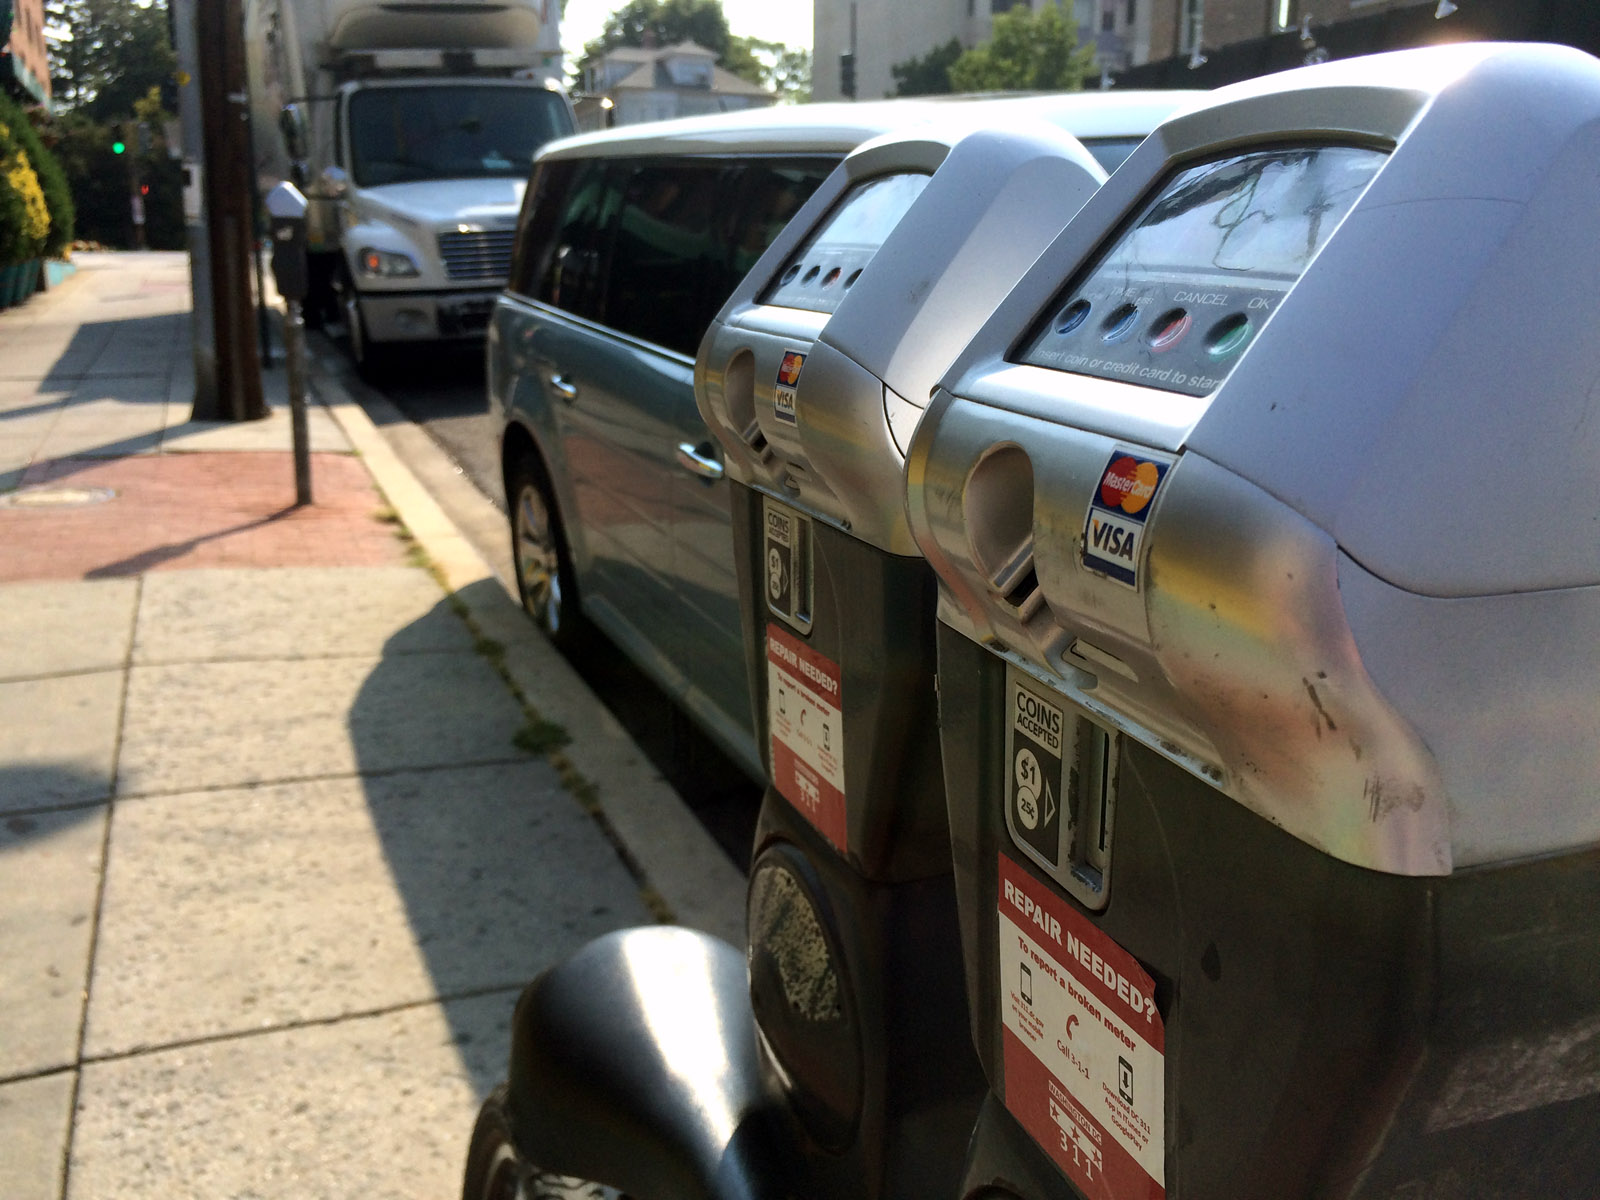 DC parking meter rates set to increase in June